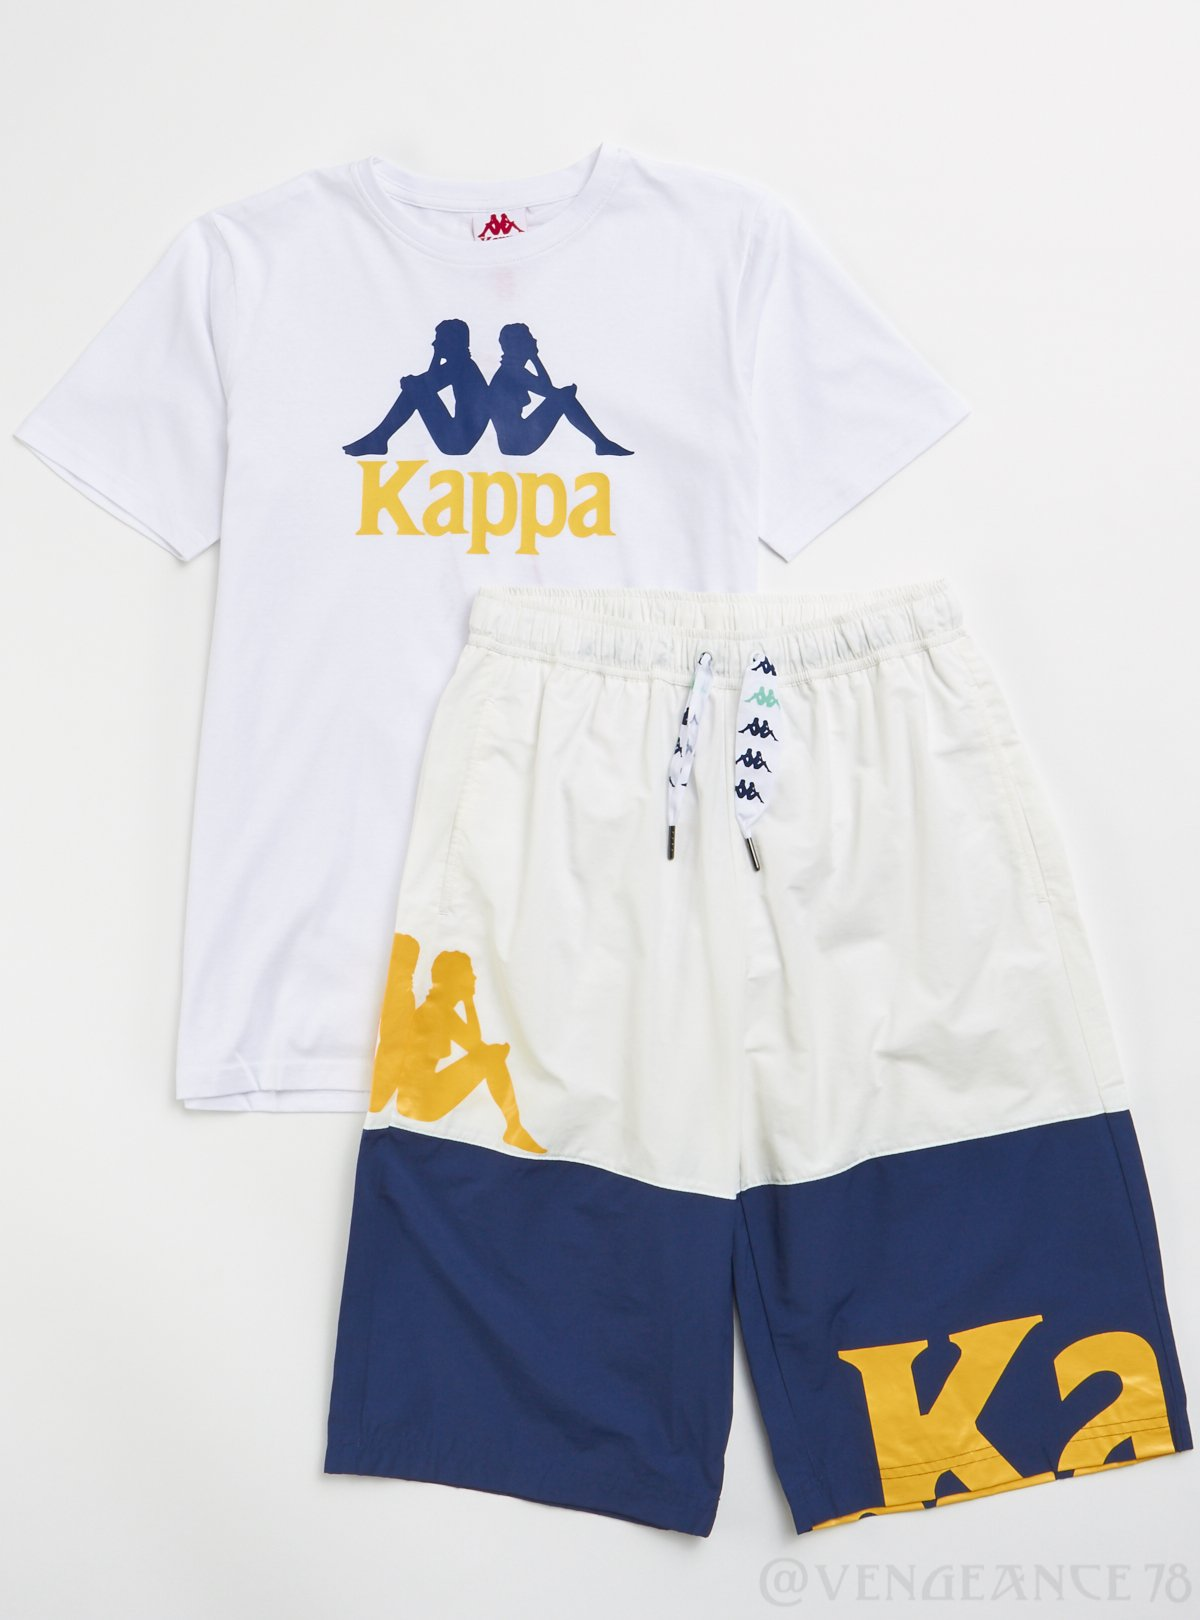 Kappa Short Set - Authentic Estessi Man - White with Blue and Yellow - 304KPT0